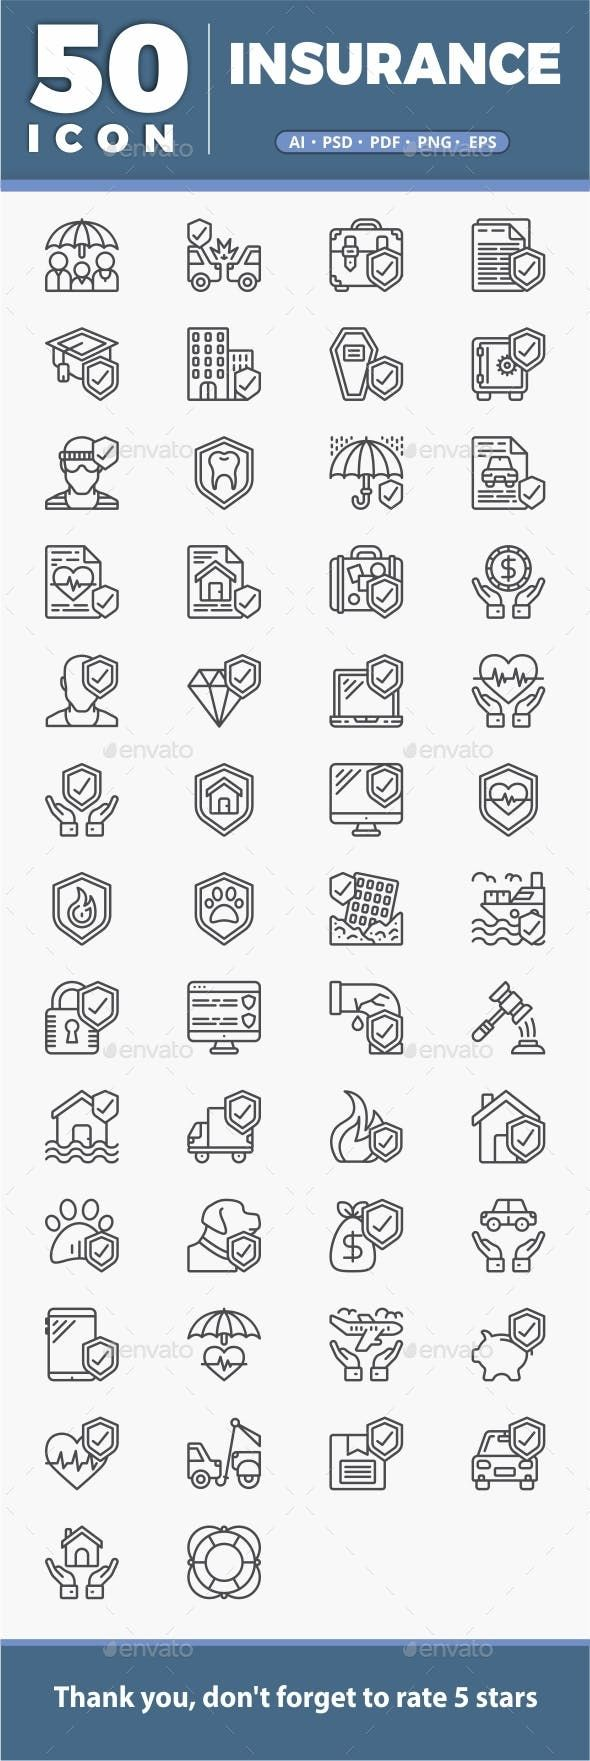 50 Insurance Icons